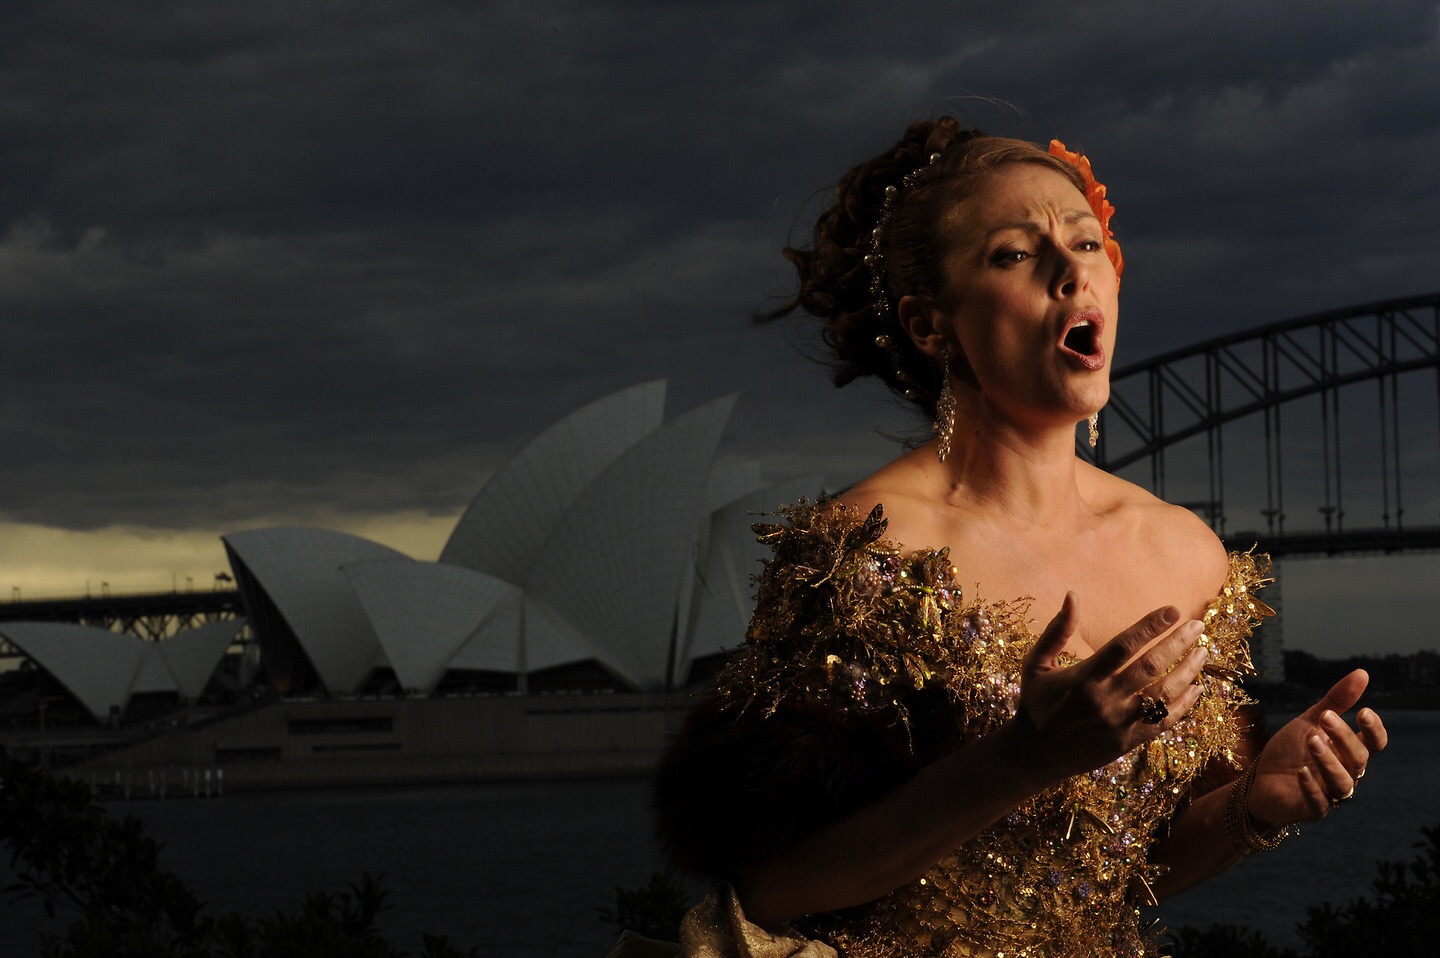 Sydney opera singer in front of the Sydney Opera House.